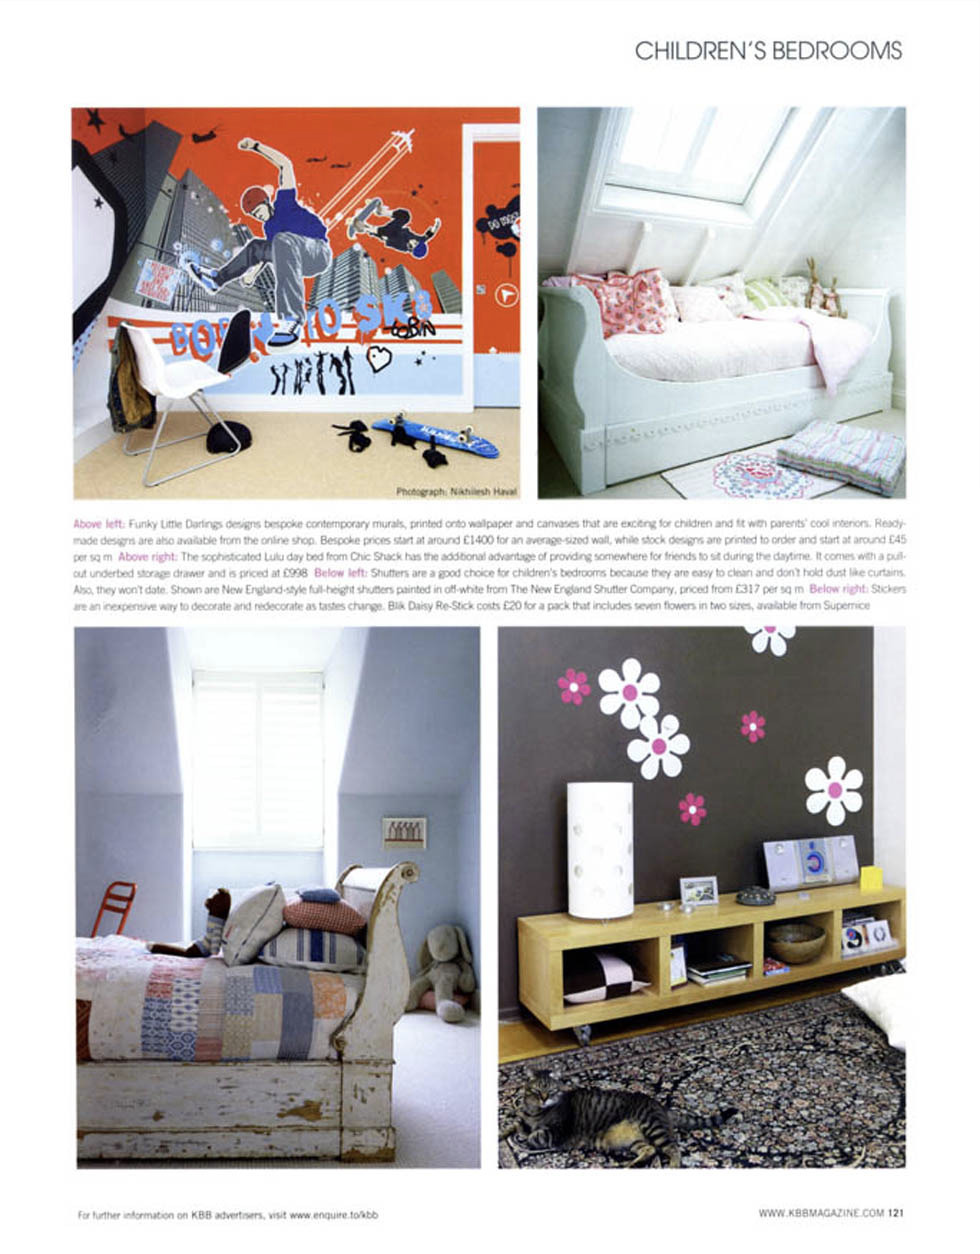 Born to Sk8 bespoke mural in feature - our designs fit in with parents' cool interiors